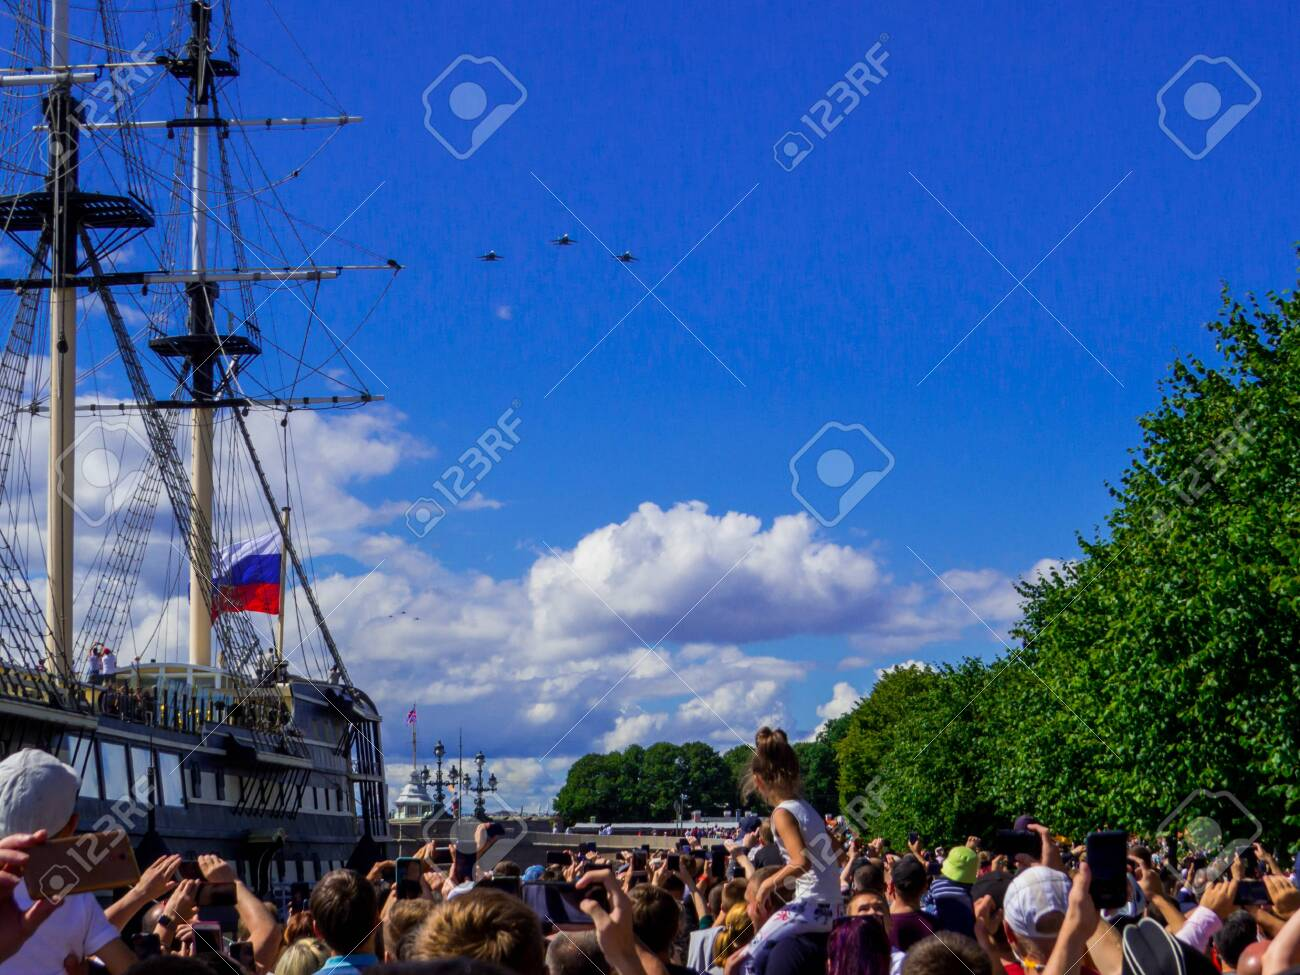 St. Petersburg, Russia - July 26, 2020: People watching the annual celebrations for the Navy Day on the embankment of the Neva River. - 152365080